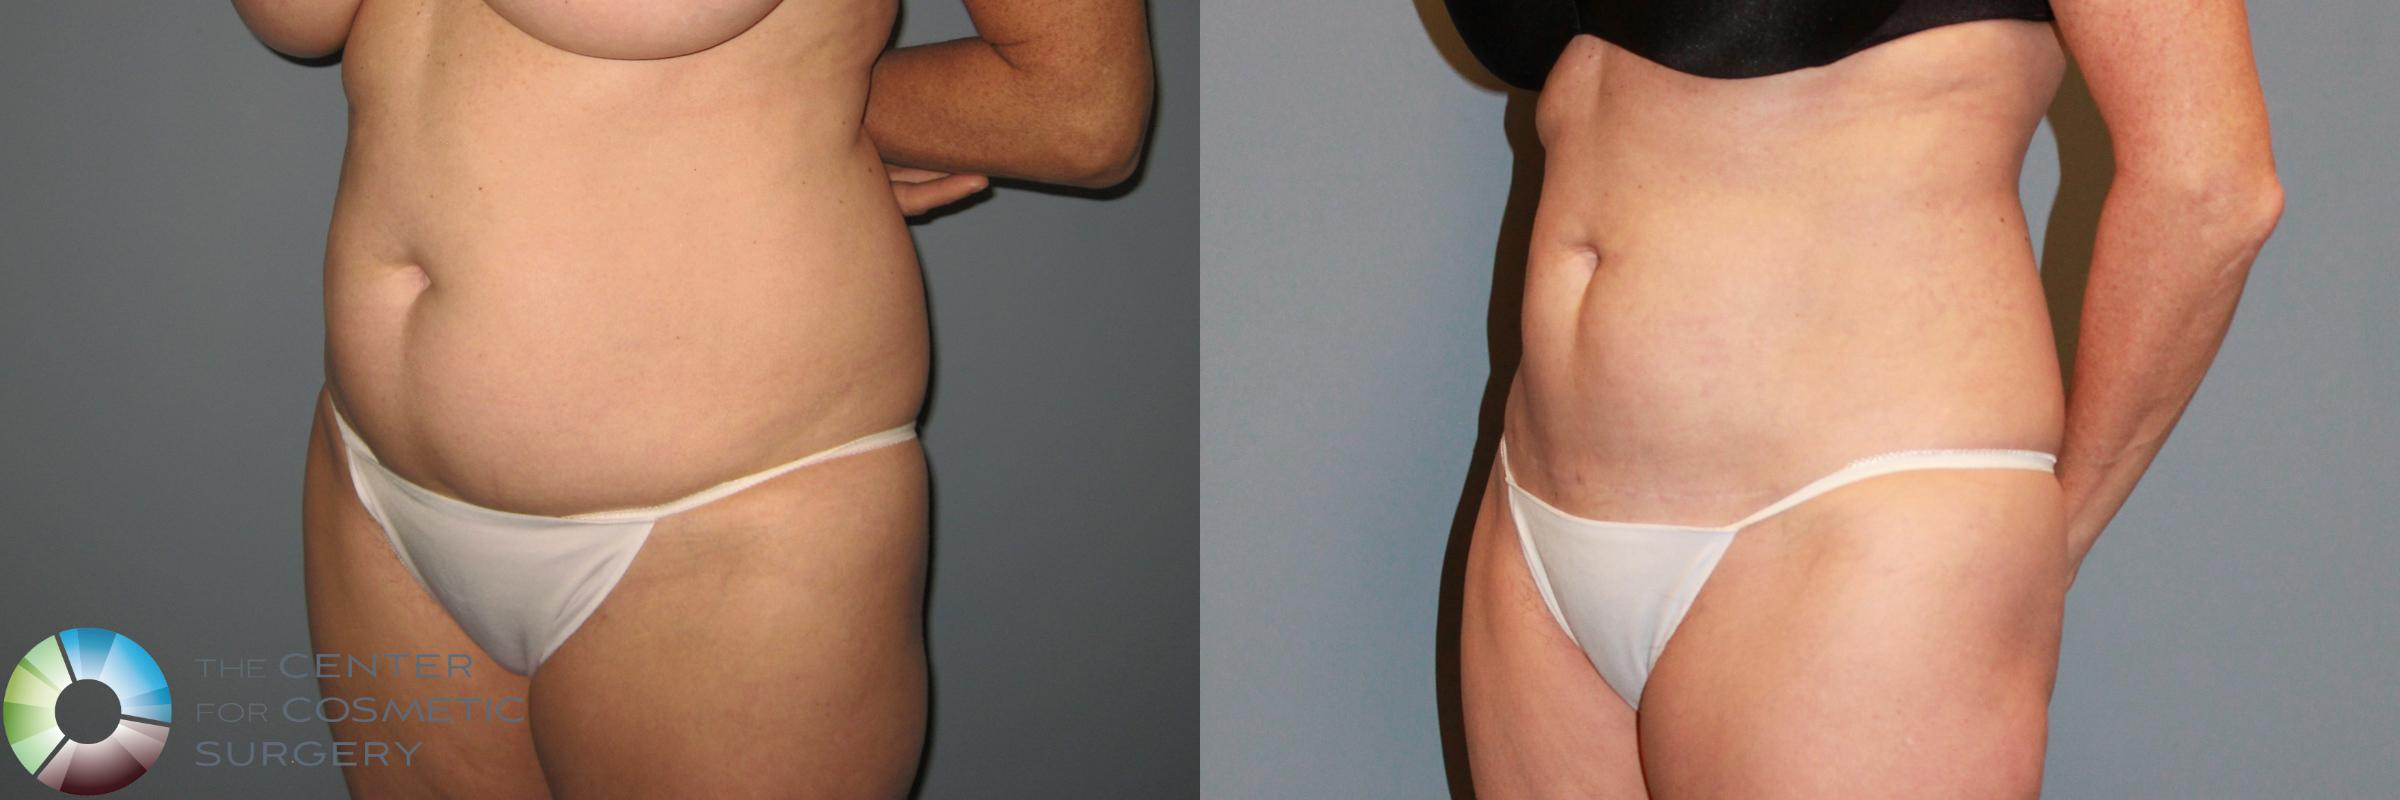 Power-assisted Liposuction Case 869 Before & After View #3 | Golden, CO | The Center for Cosmetic Surgery